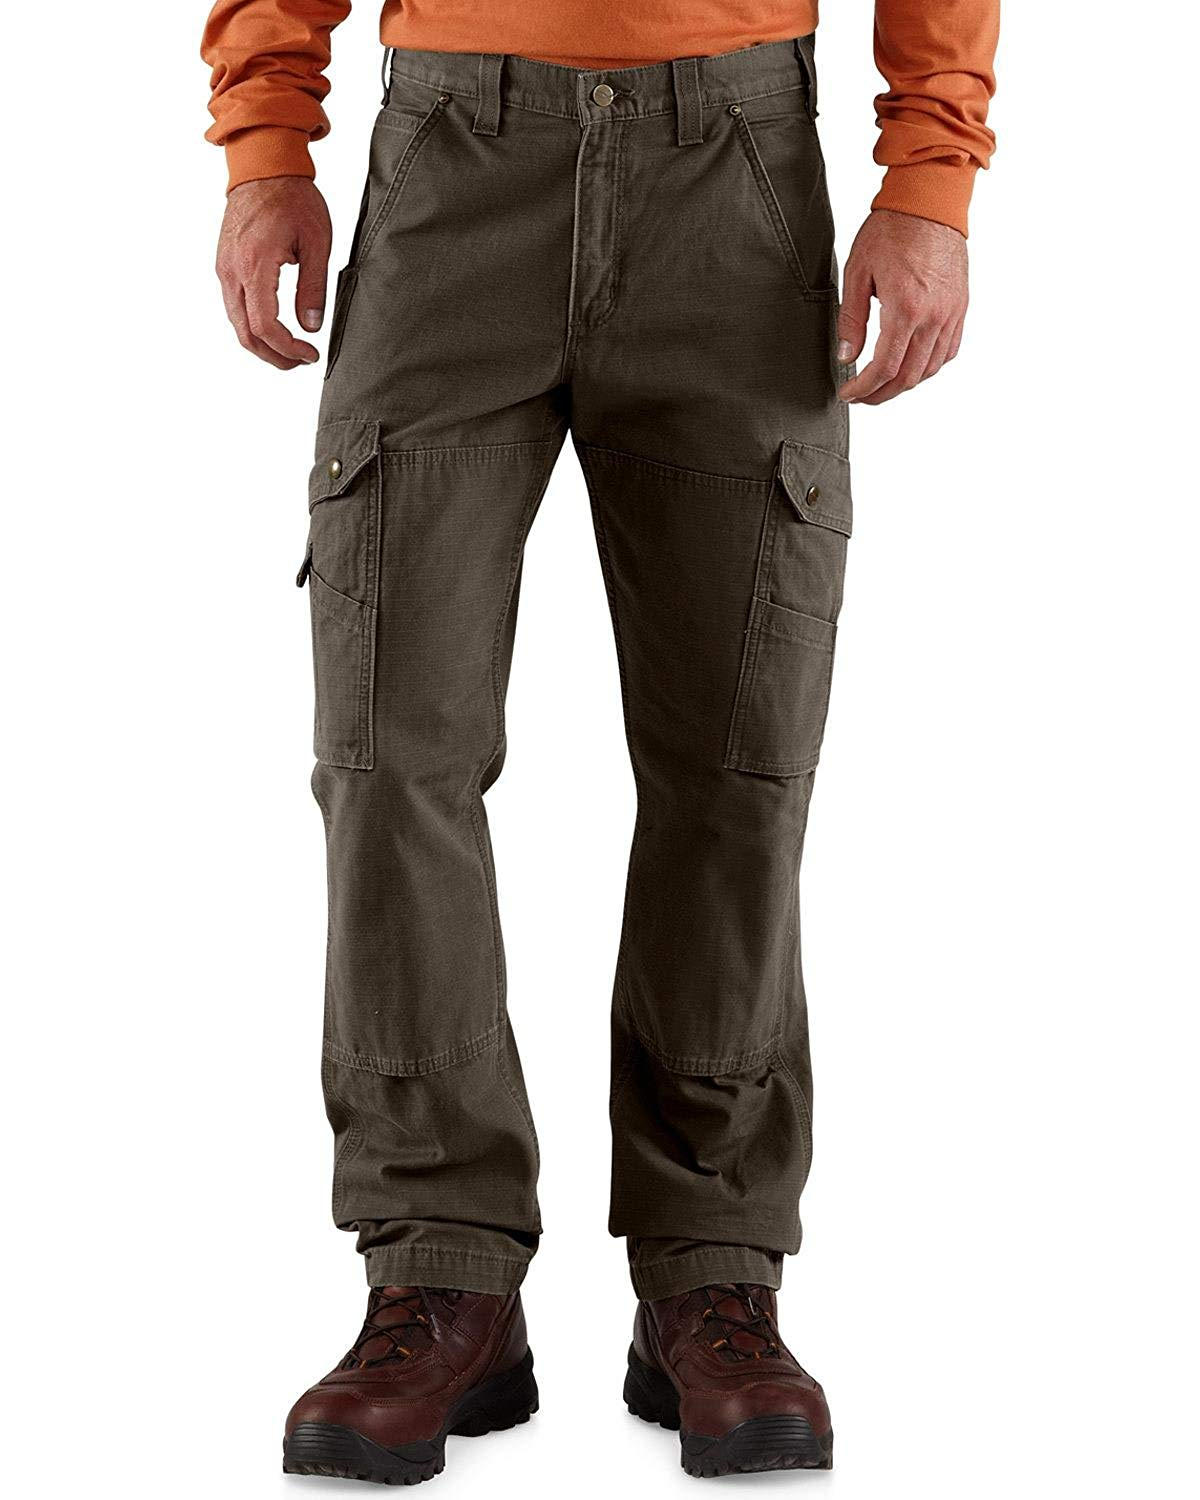 Carhartt Ripstop Relaxed Fit Work Pant